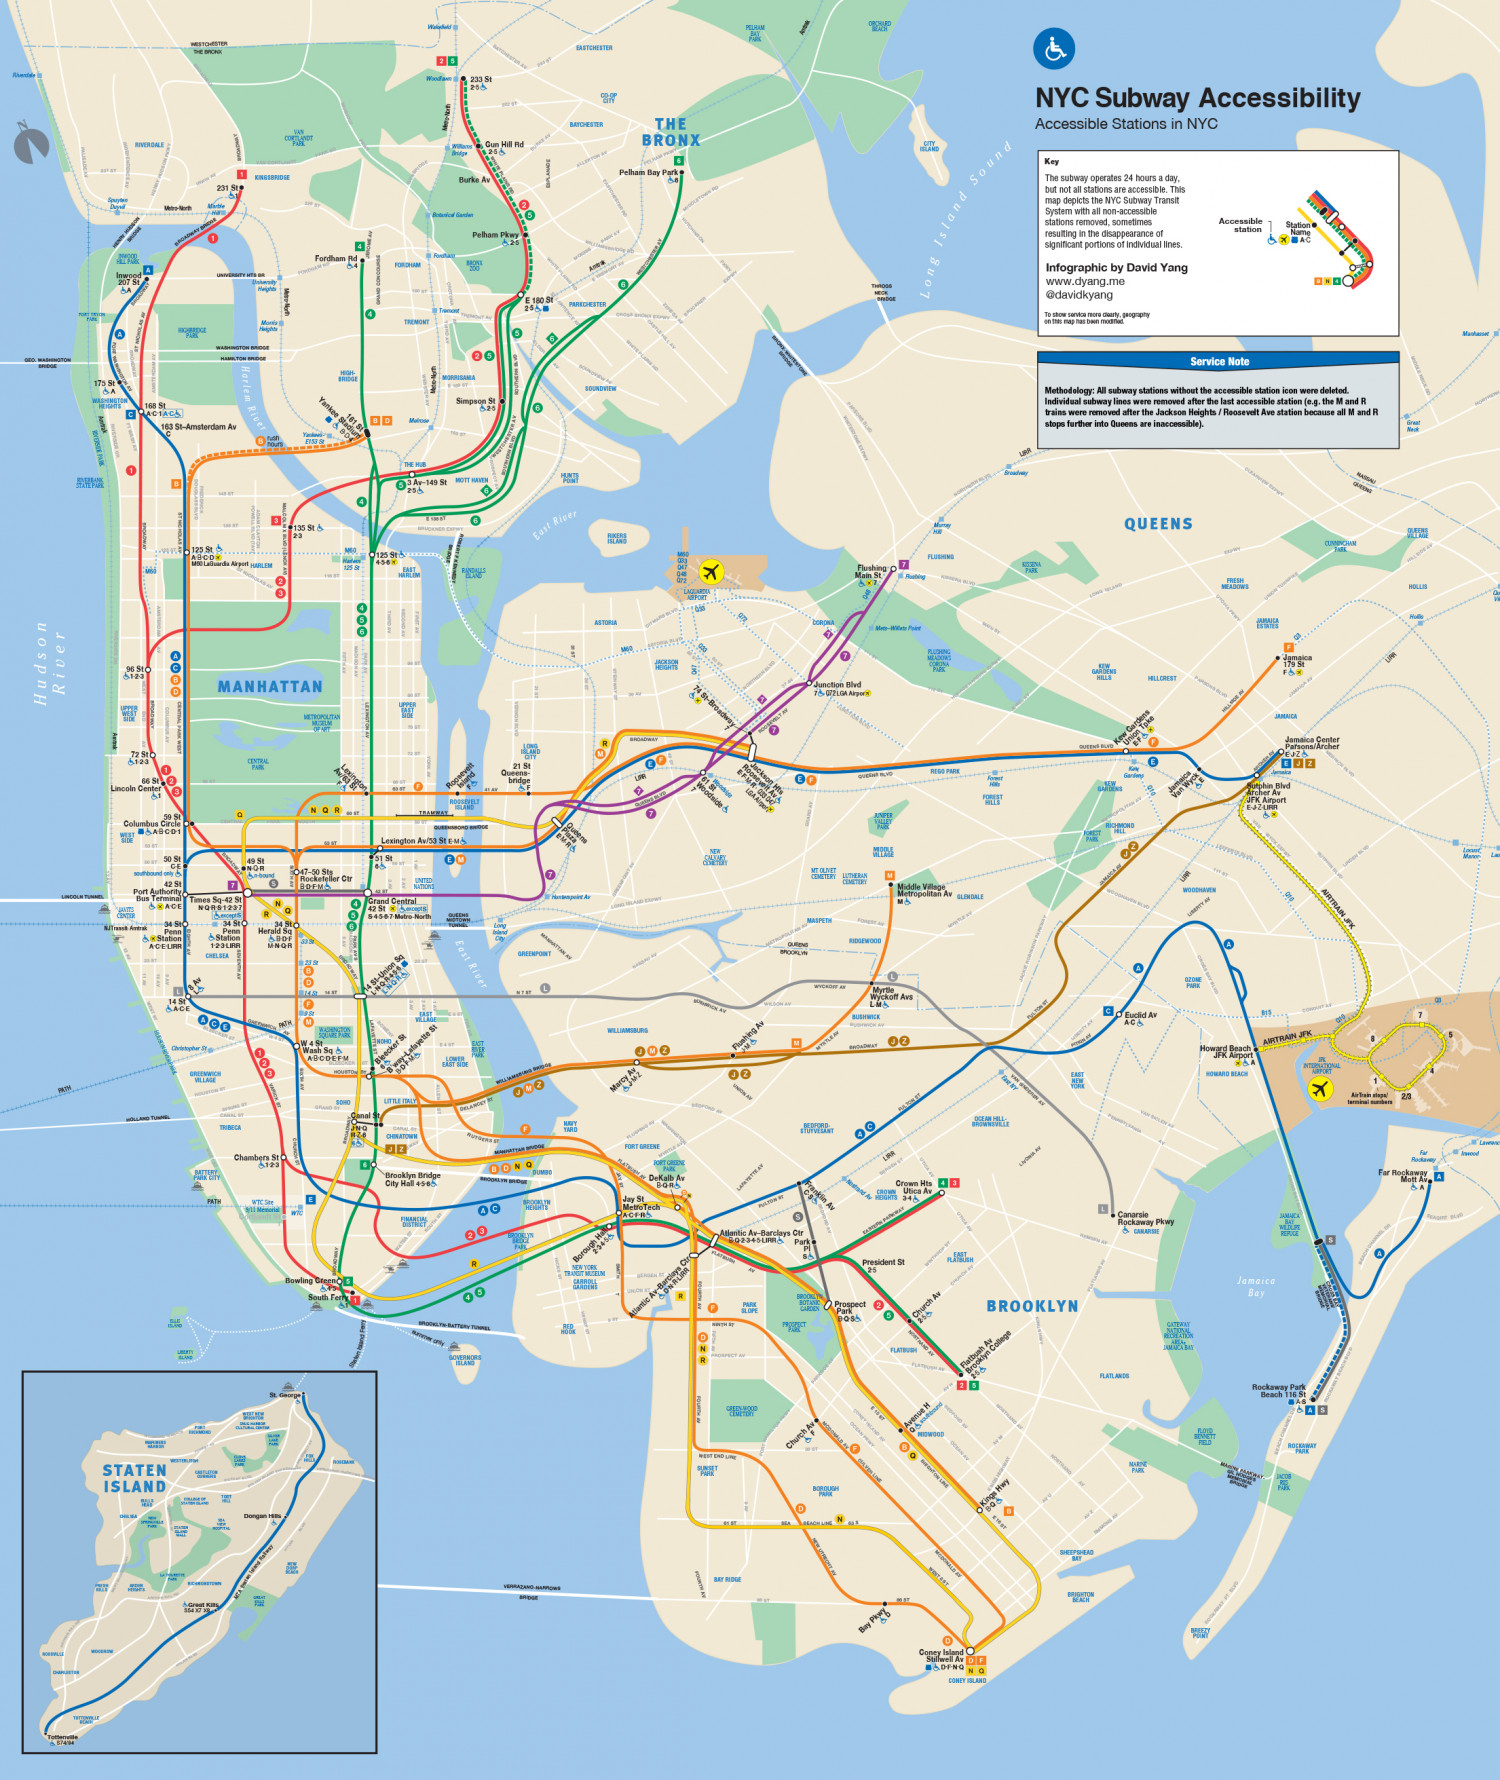 NYC Subway Accessibility Infographic